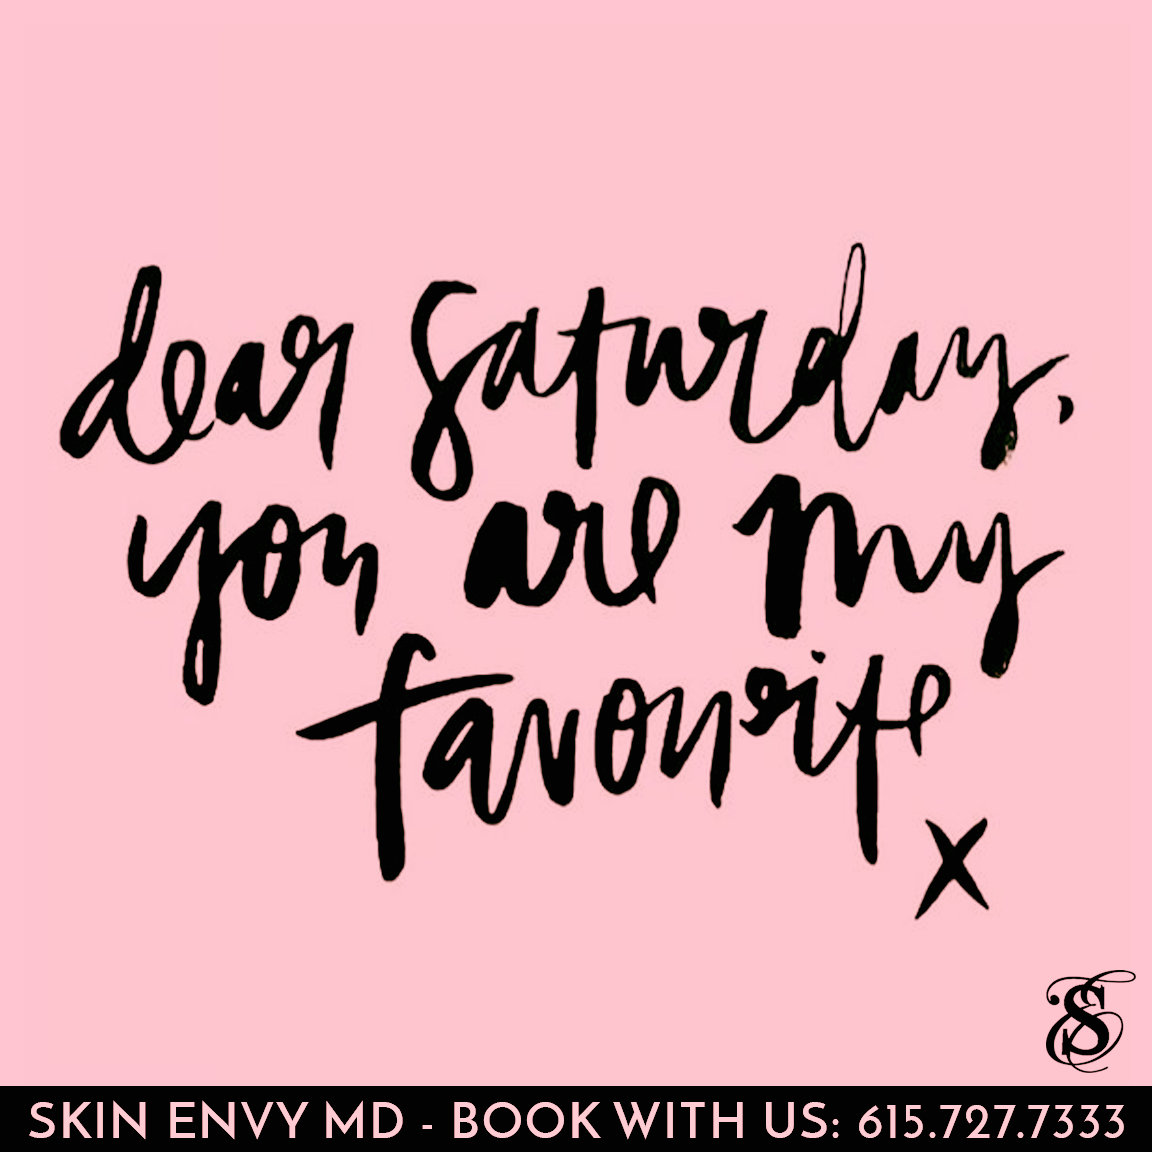 Dear Saturday - You are my favorite - Botox Dysport Juvederm Restylane by Skin Envy MD Nashville.png